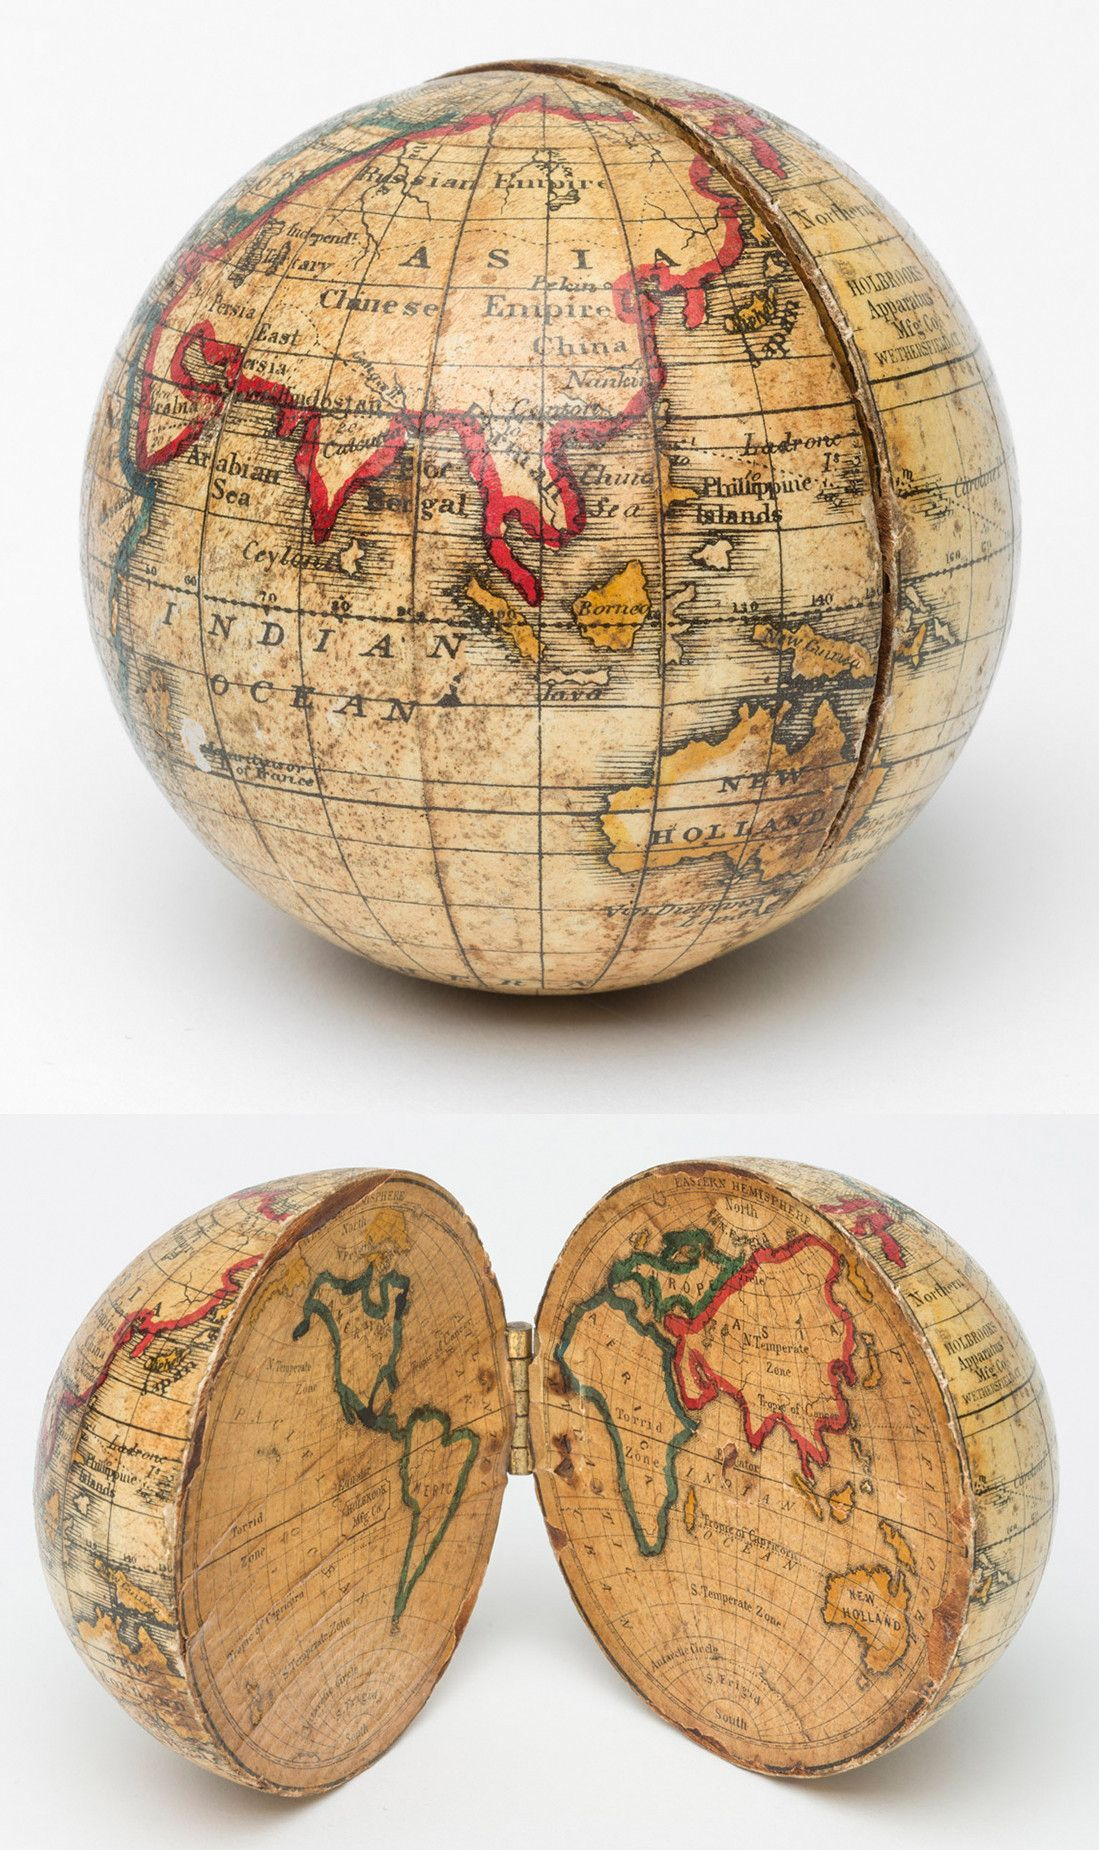 An Opening Pocket Globe made by Holbrook Apparatus Manufacturing Co